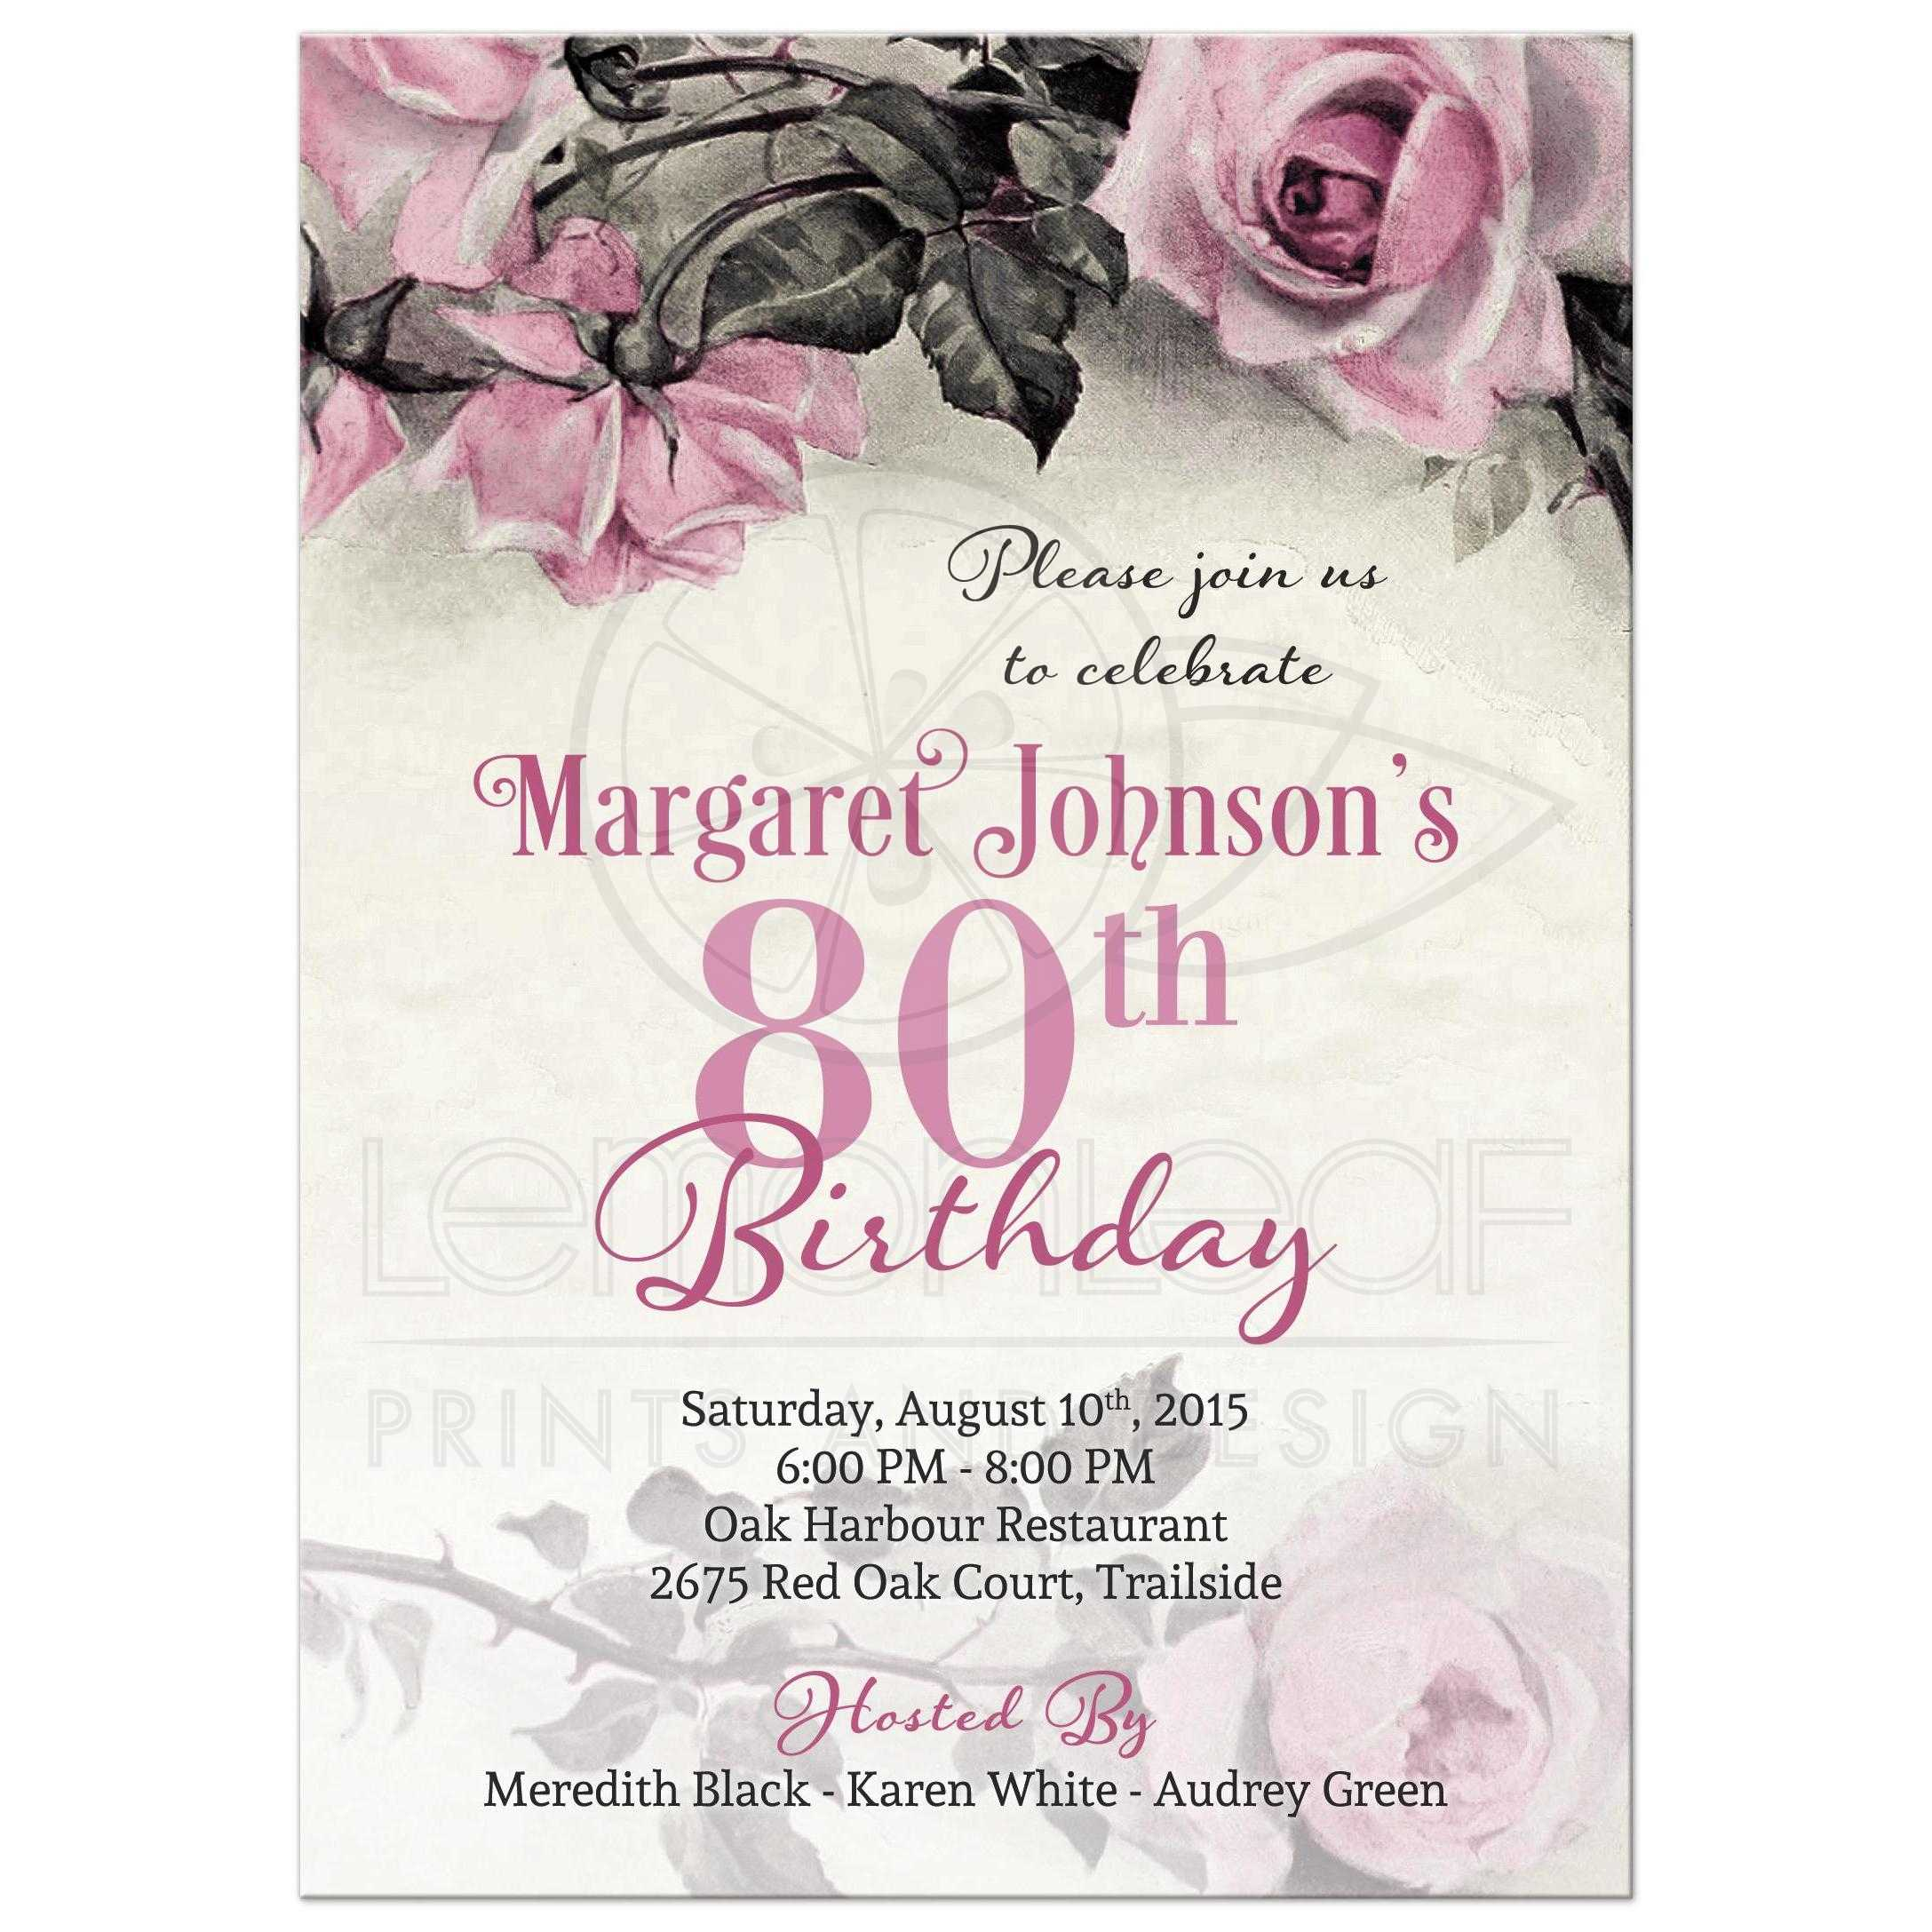 80th birthday invitation vintage pink grey rose vintage pink grey gray and ivory rose 80th birthday party invitation front stopboris Images